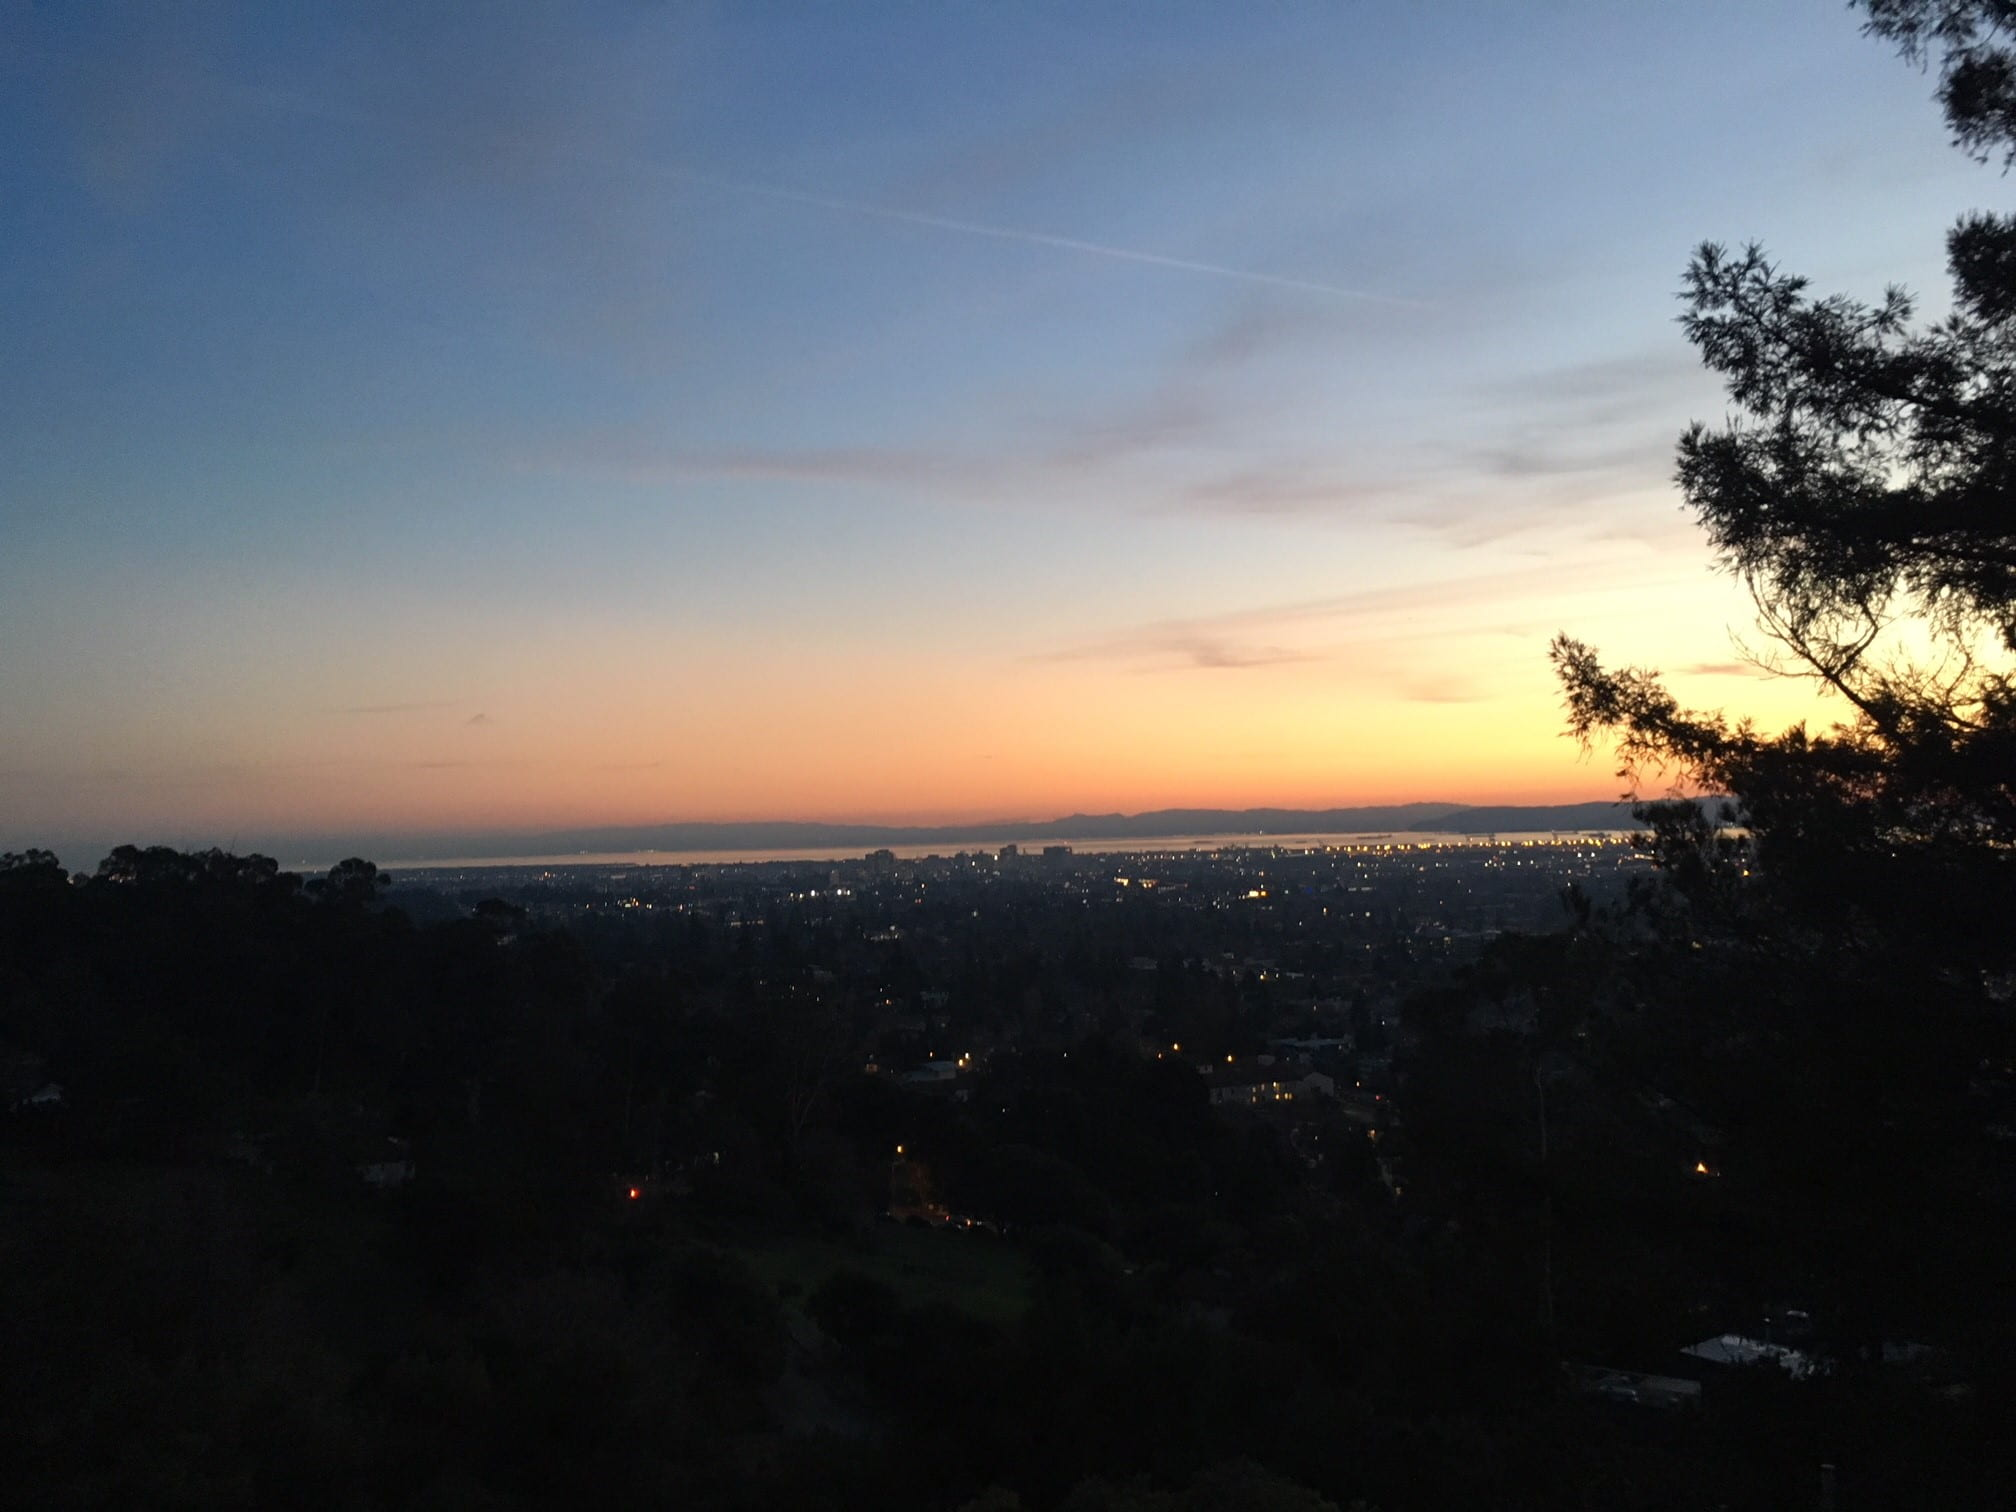 Sunset over Berkeley